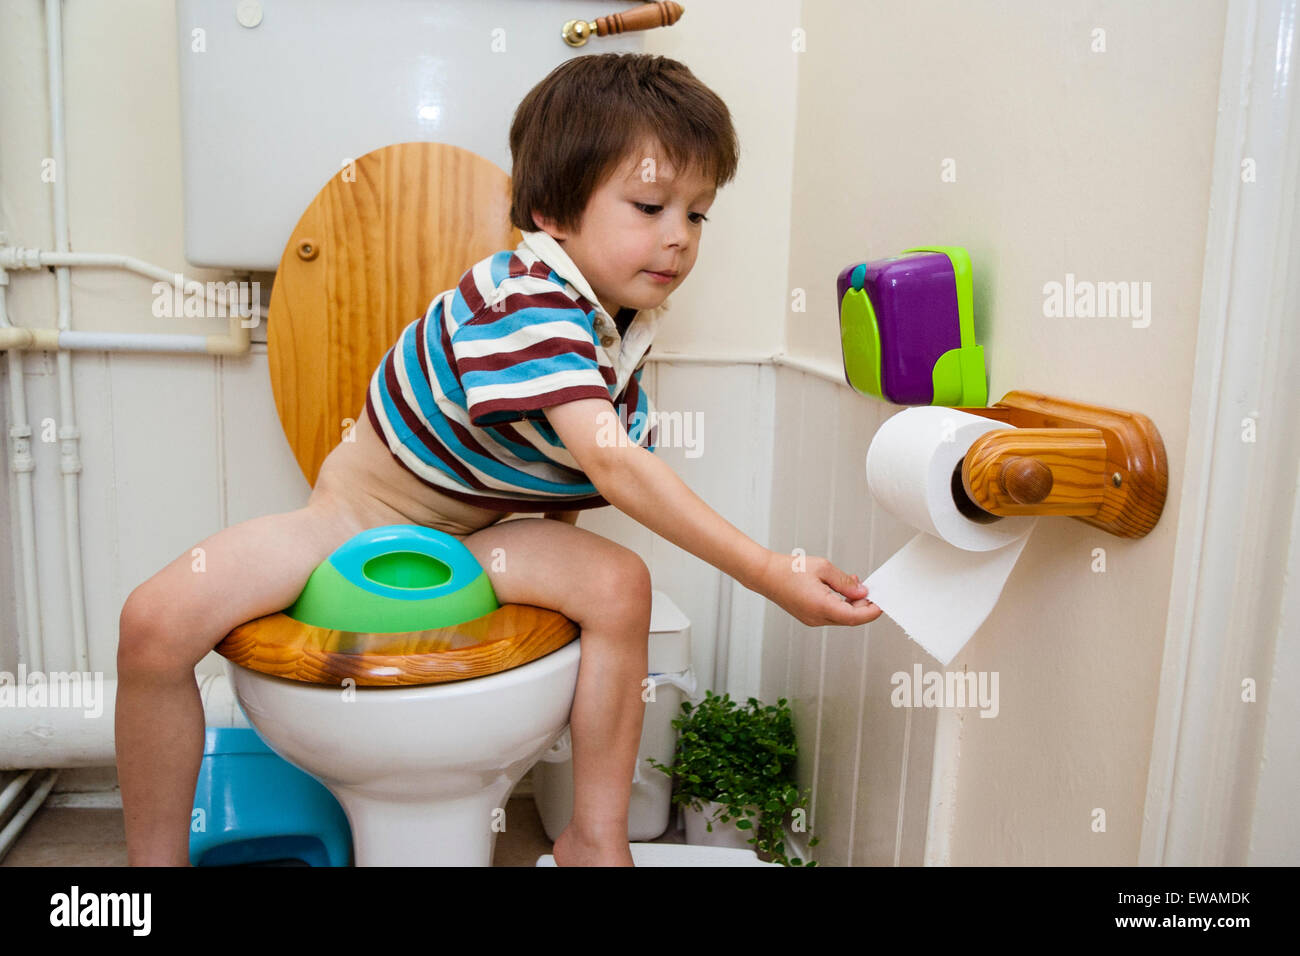 3 To 5 Year Old Caucasian Boy Sitting On Toilet Seat